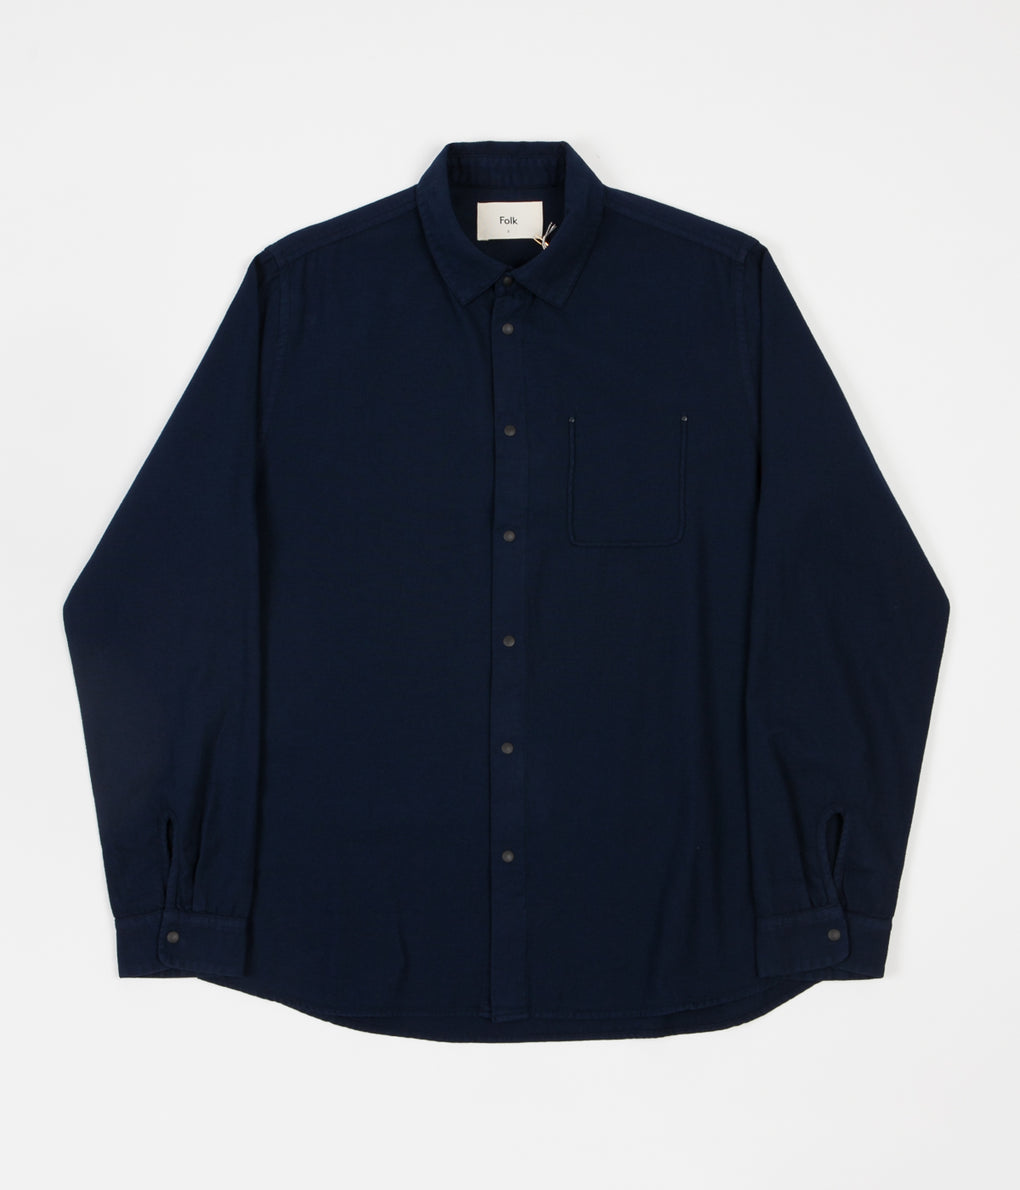 Folk Flannel Pop Stud Shirt - Navy